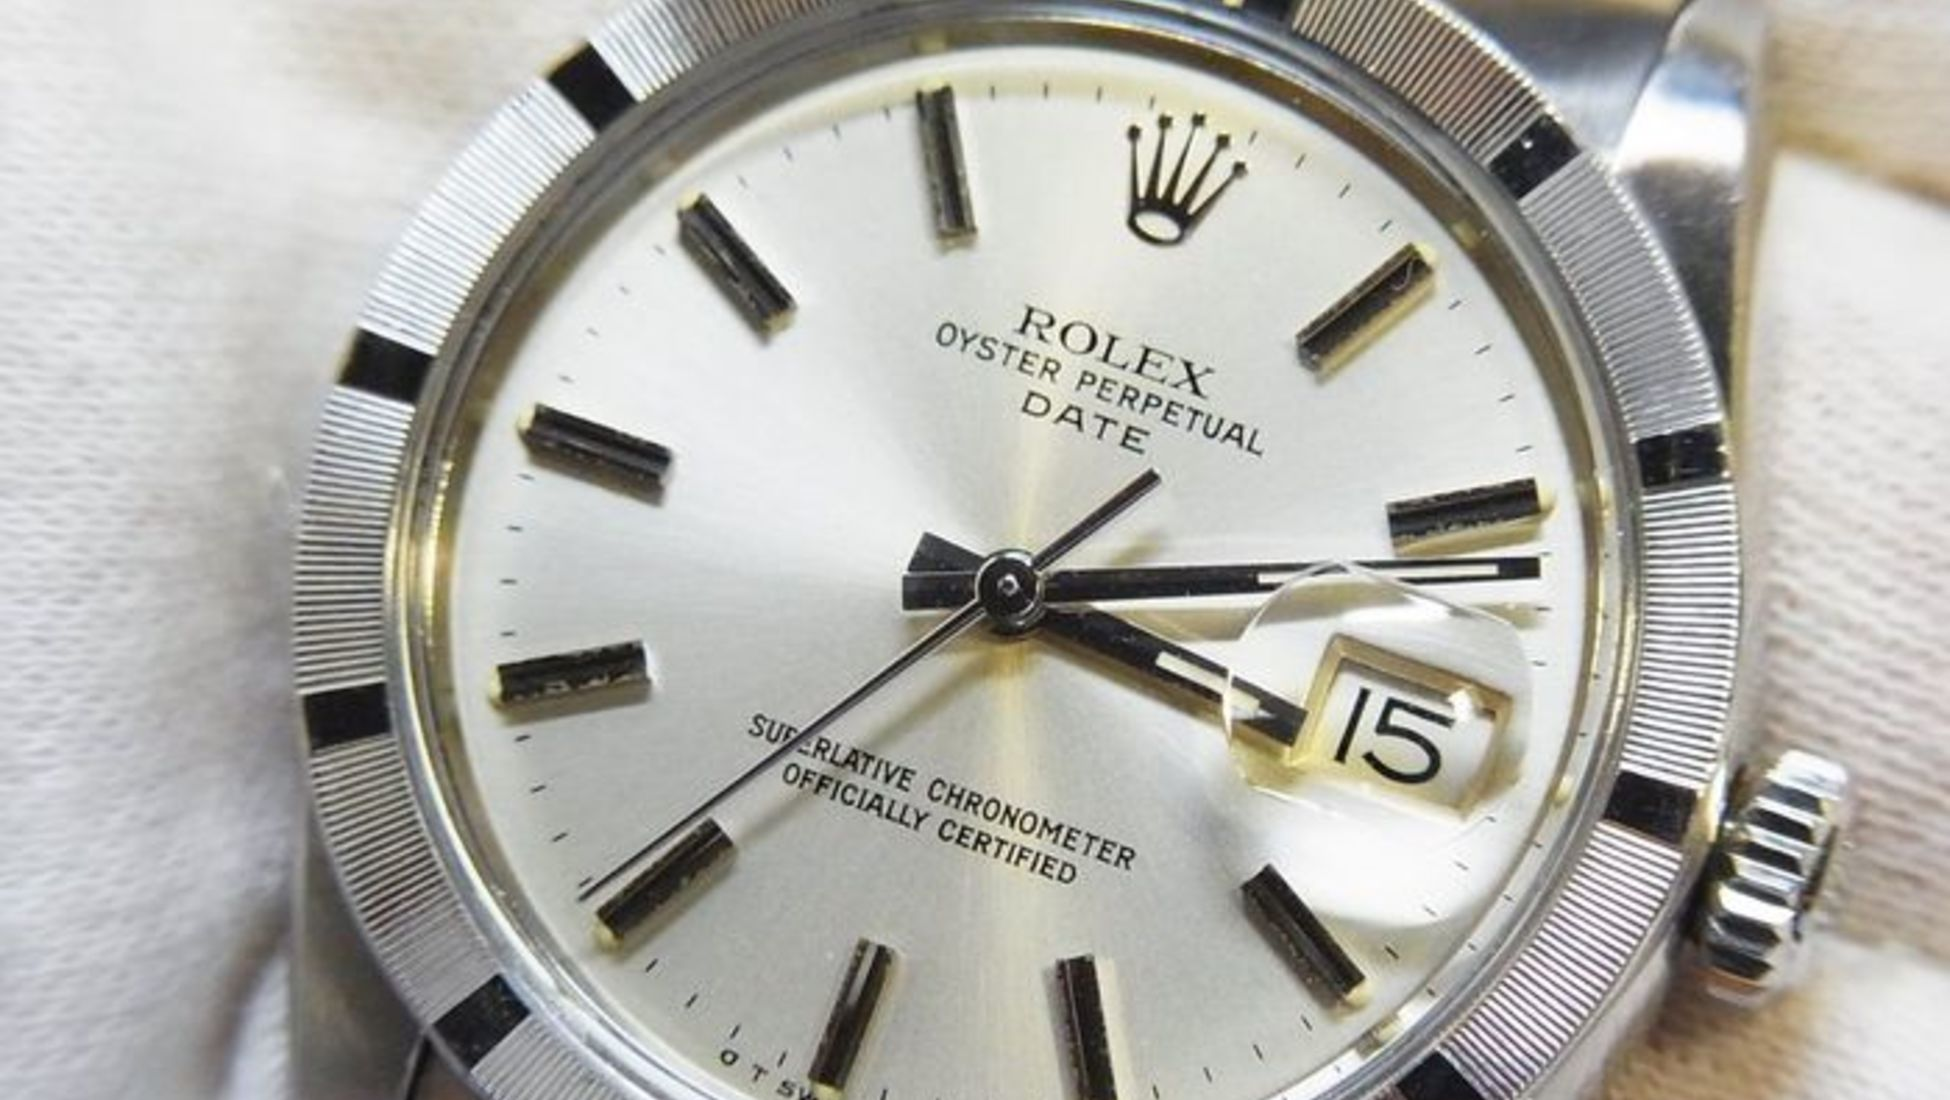 cb490c69dff How to Buy and Sell Rolex Watches Online Without The Stress - Catawiki